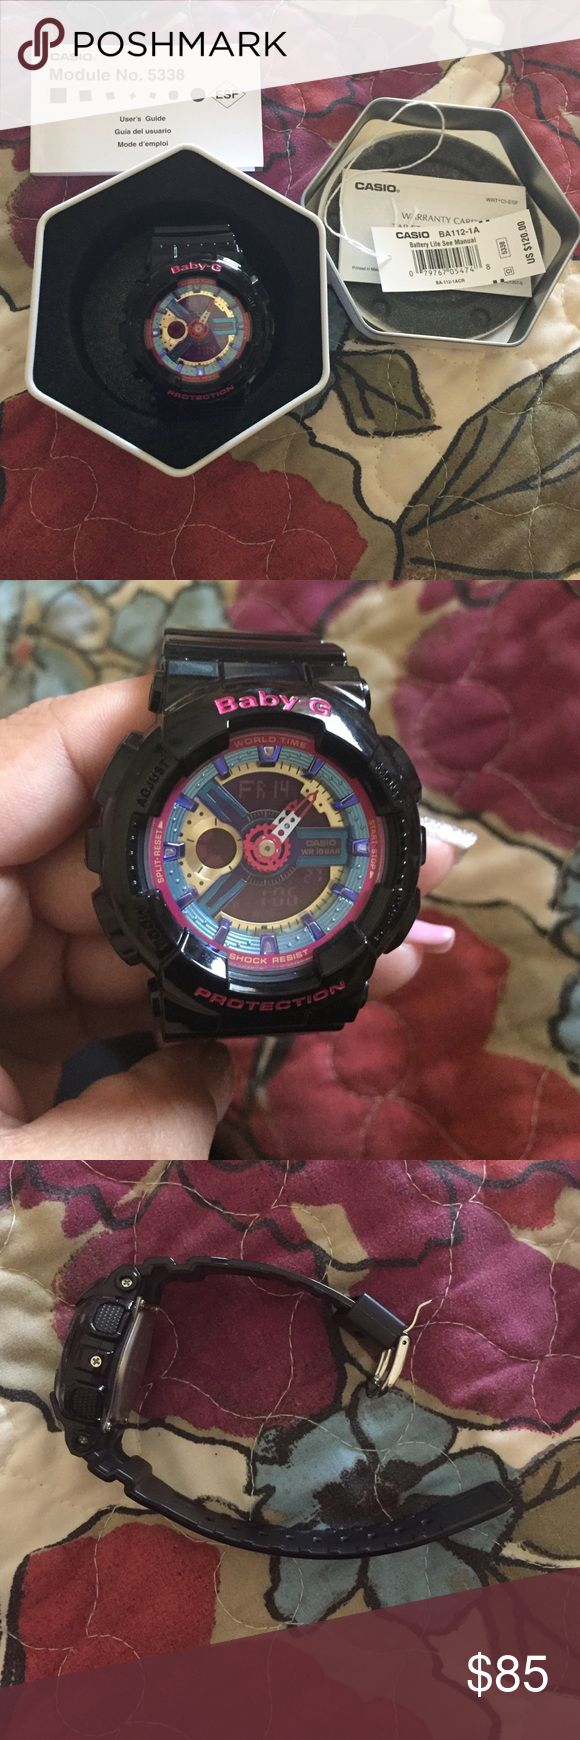 Casio Baby G shock women's watch Casio Baby G shock women's watch. Brand New Never worn. Shock Resistant 100M, Water Resistant, LED-Backlight and lightweight. Casio Accessories Watches